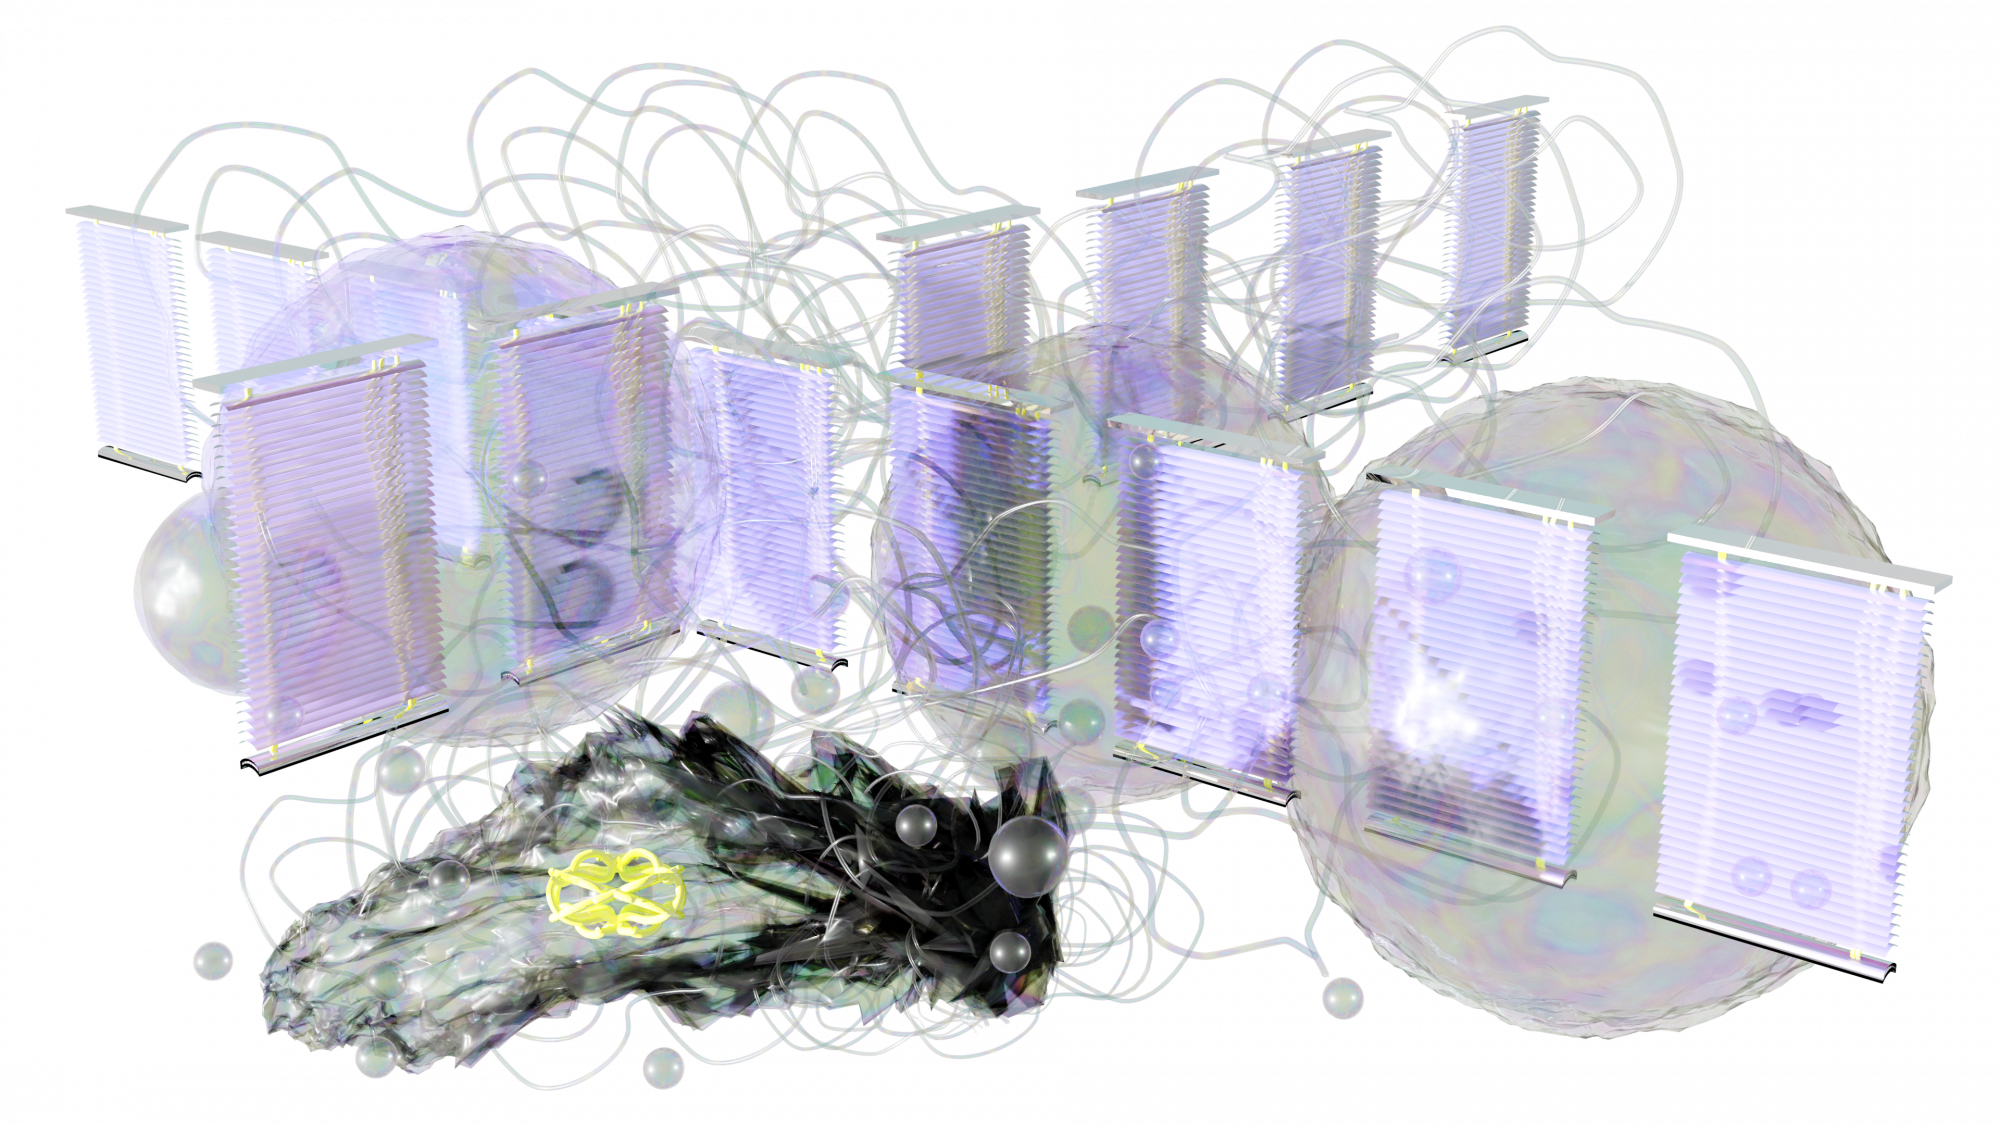 Arranged in a cross are 14 iridescent office blinds standing upright. Three large iridescent bubbles sit behind these blinds and long wavy clear tubes weave in and out of all of these objects. Smaller bubbles are also scattered around the image. In the bottom left is a darker object, almost black with multiple folds and layers. On this object sits a curled fluorescent yellow tube object. The background is empty.